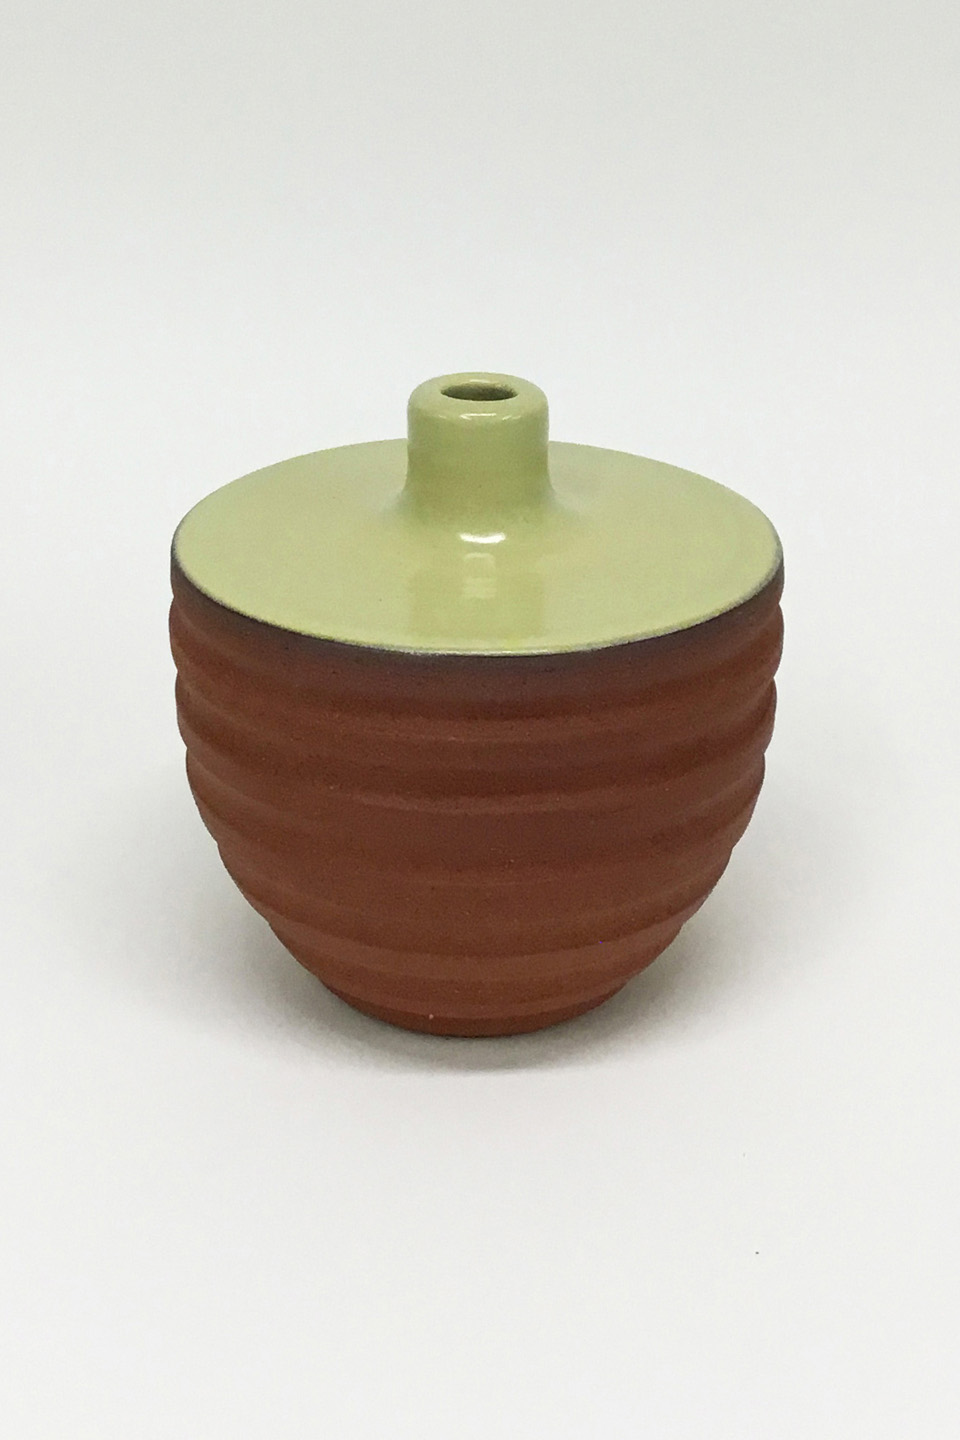 Yellow Green Ceramic Vase No. 903